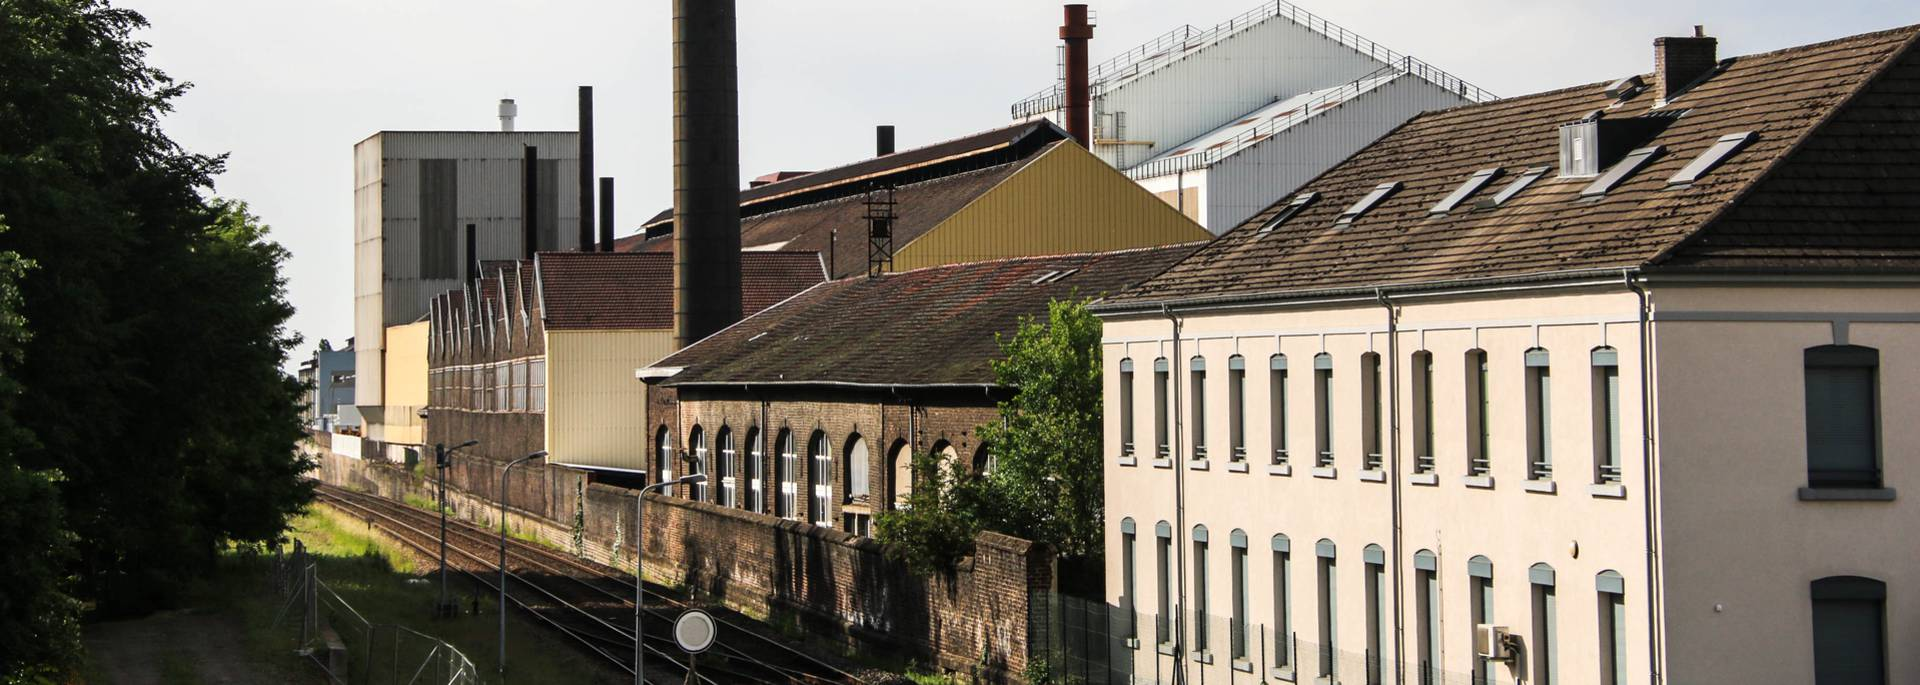 Le site industriel du Creusot. © Lesley Williamson.